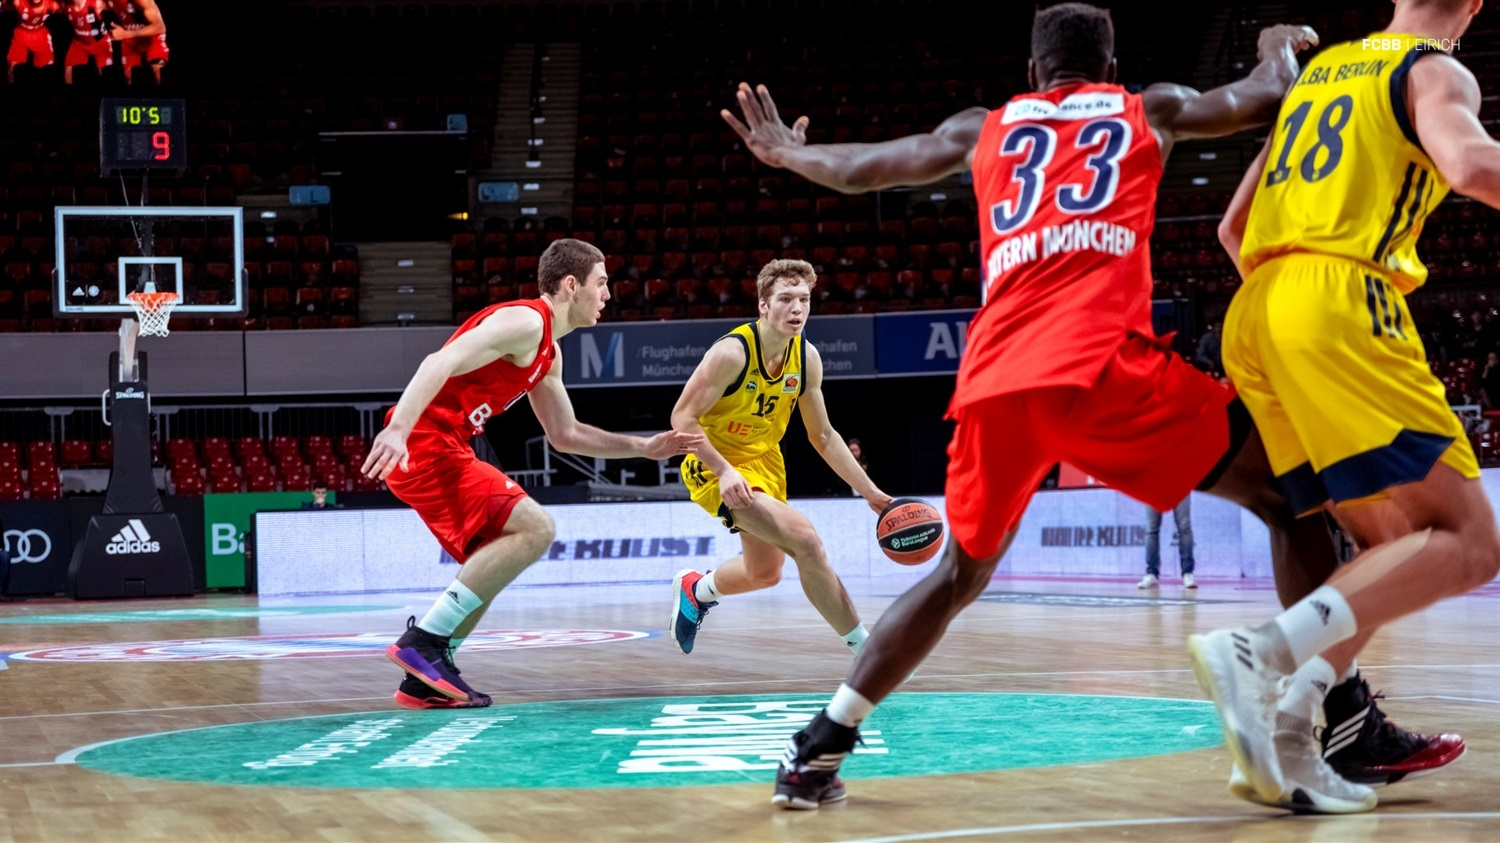 Friedrick Feldrappe - U18 ALBA Berlin - ANGT Munich 2019 (photo FCBB - Eirich) JT18